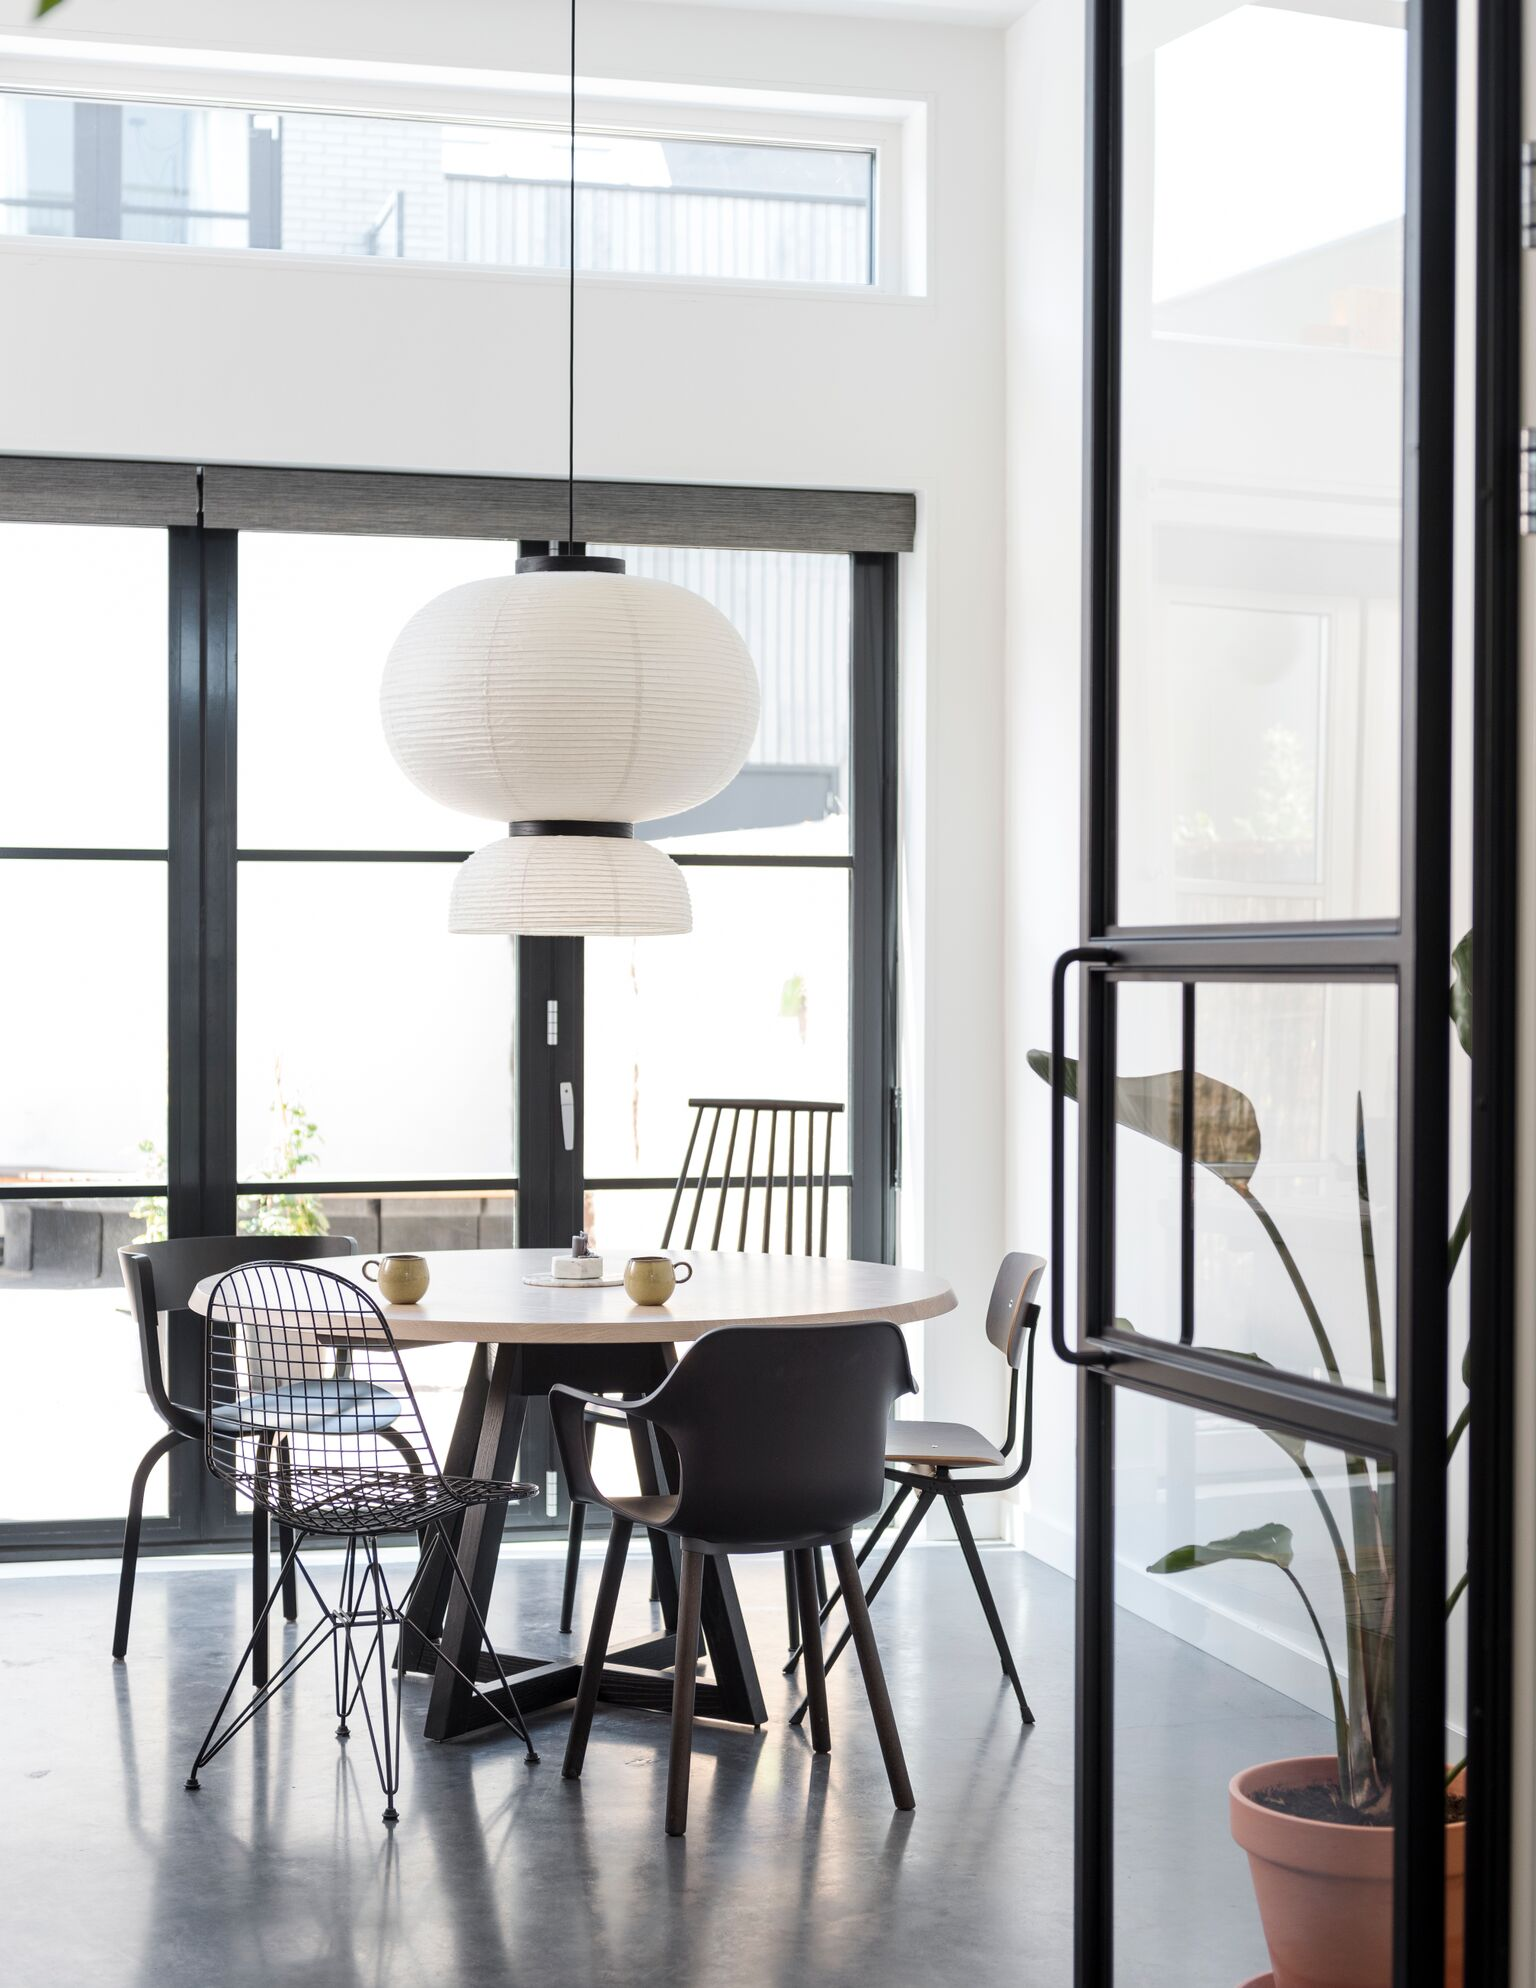 interiorproject_Amsterdam-april and May-07.jpg